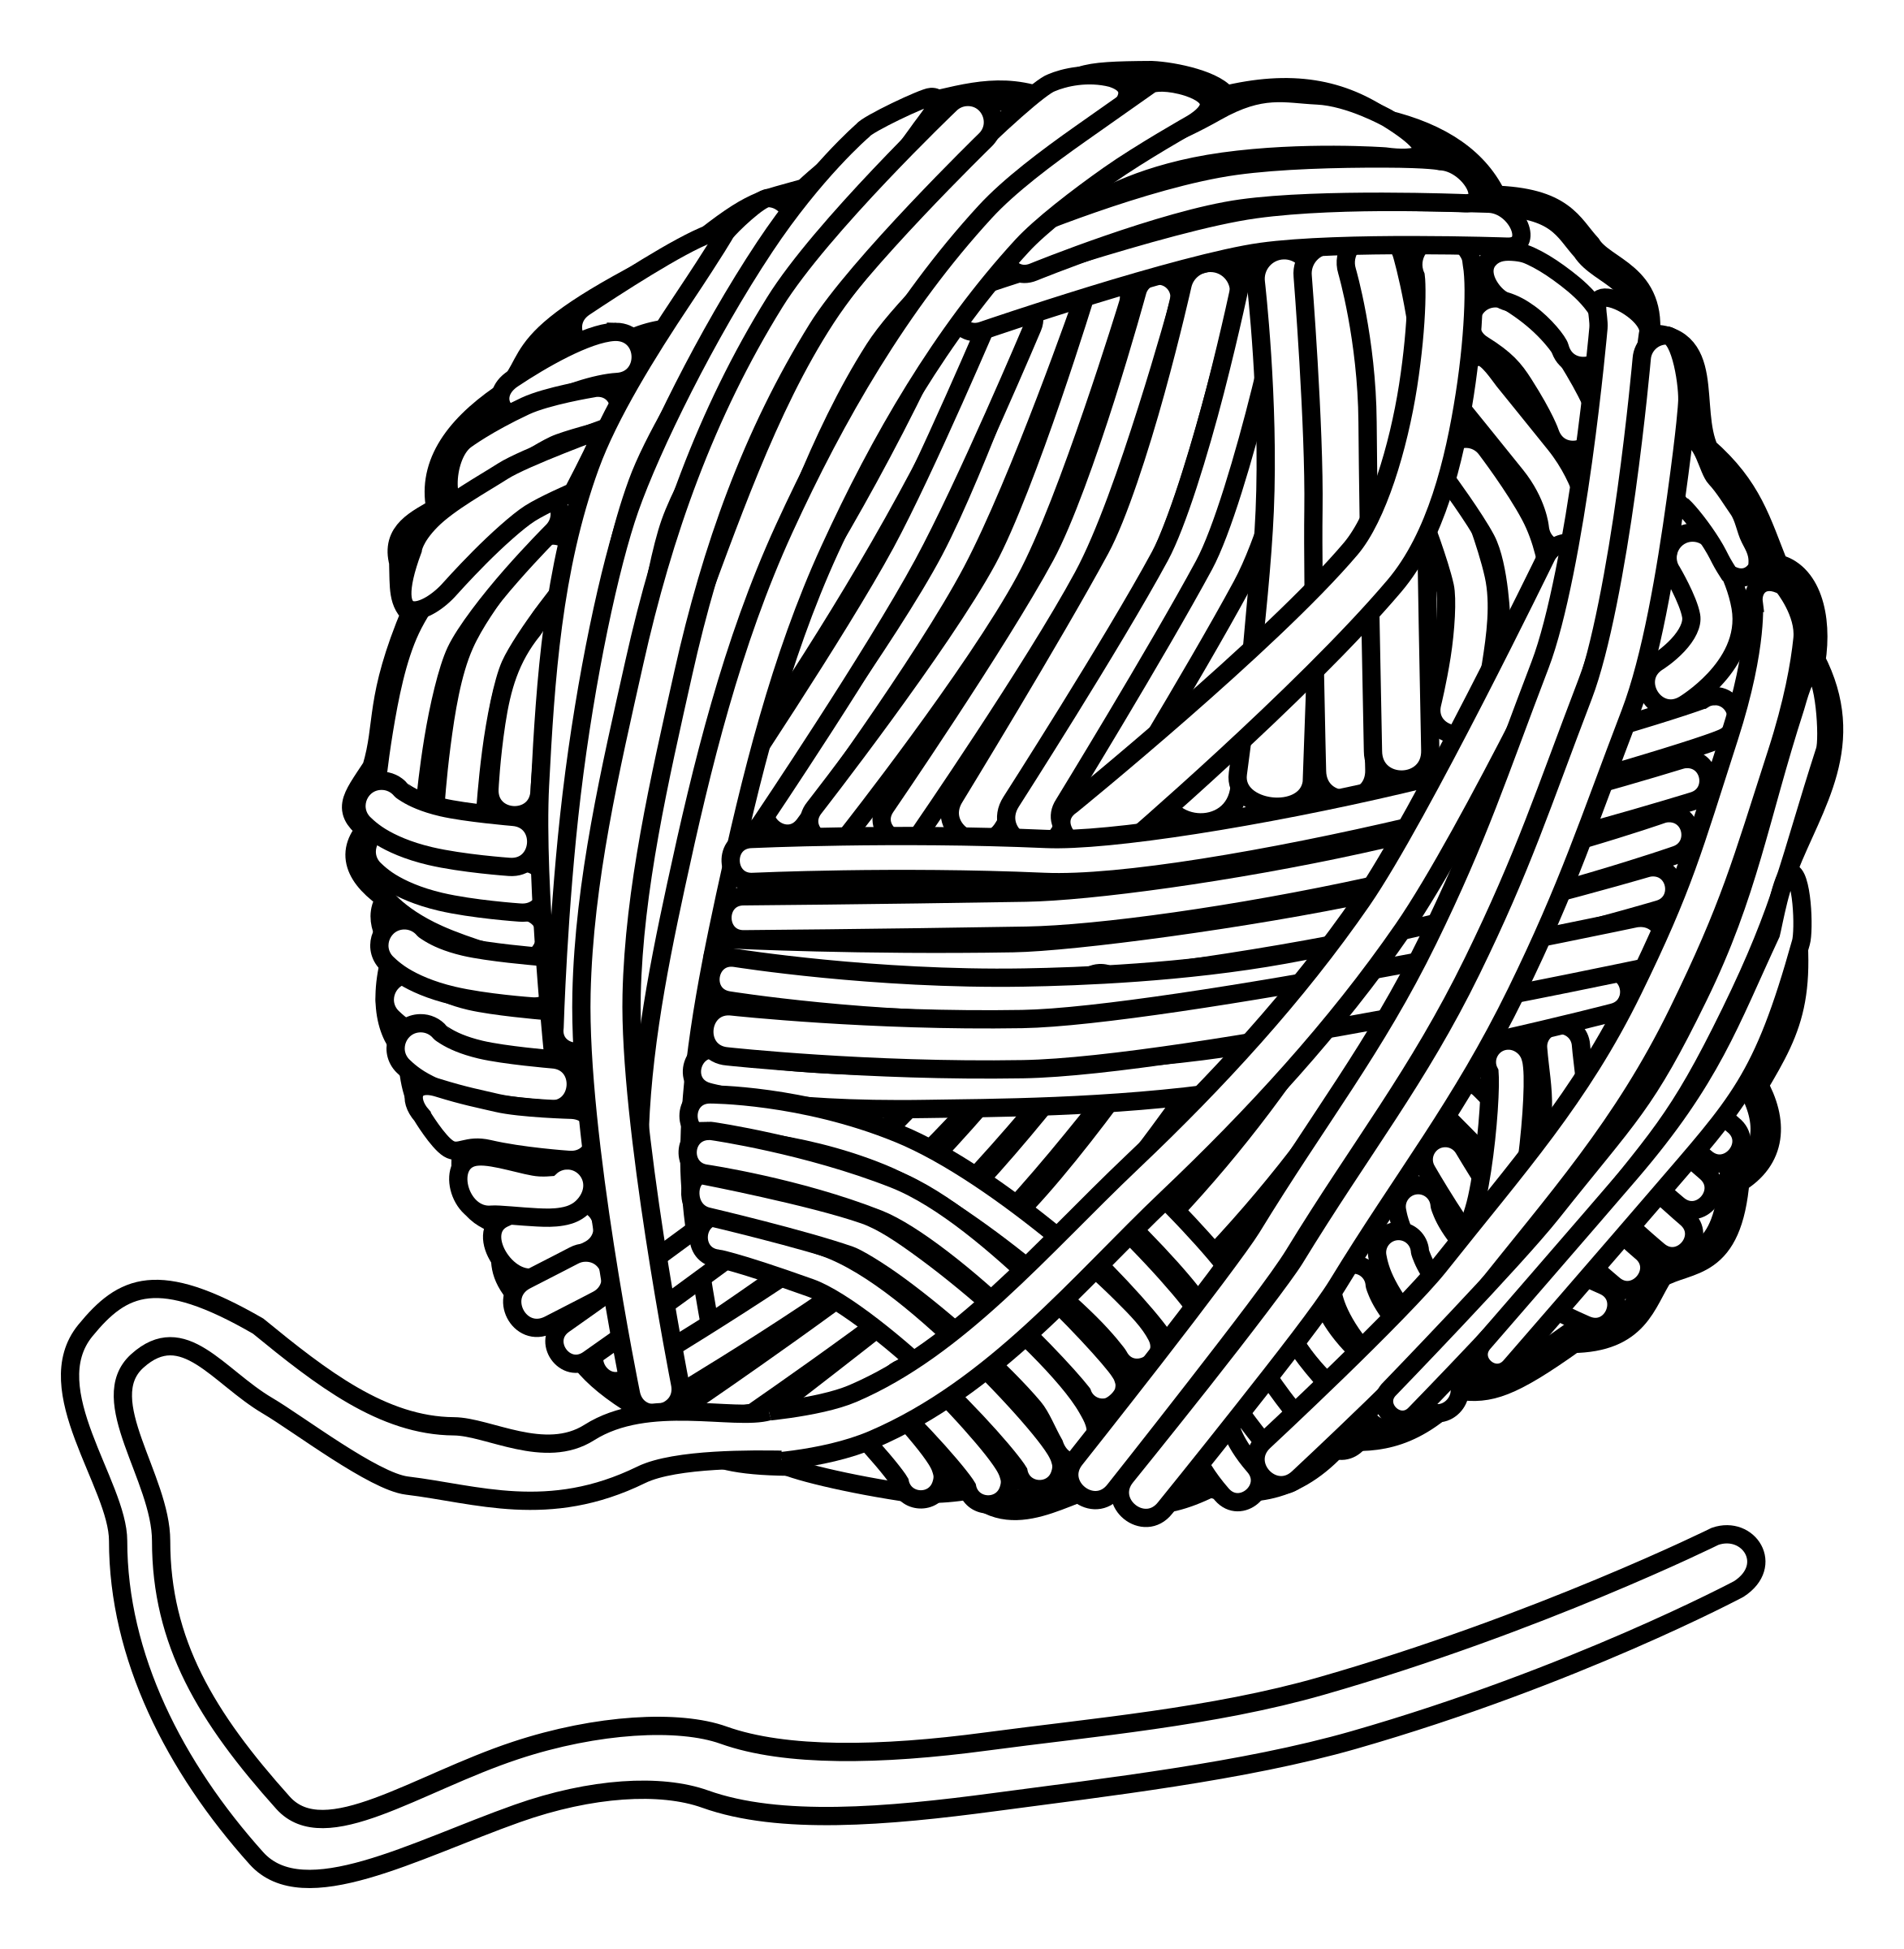 2345x2400 Yarn Png Black And White Transparent Yarn Black And White.png